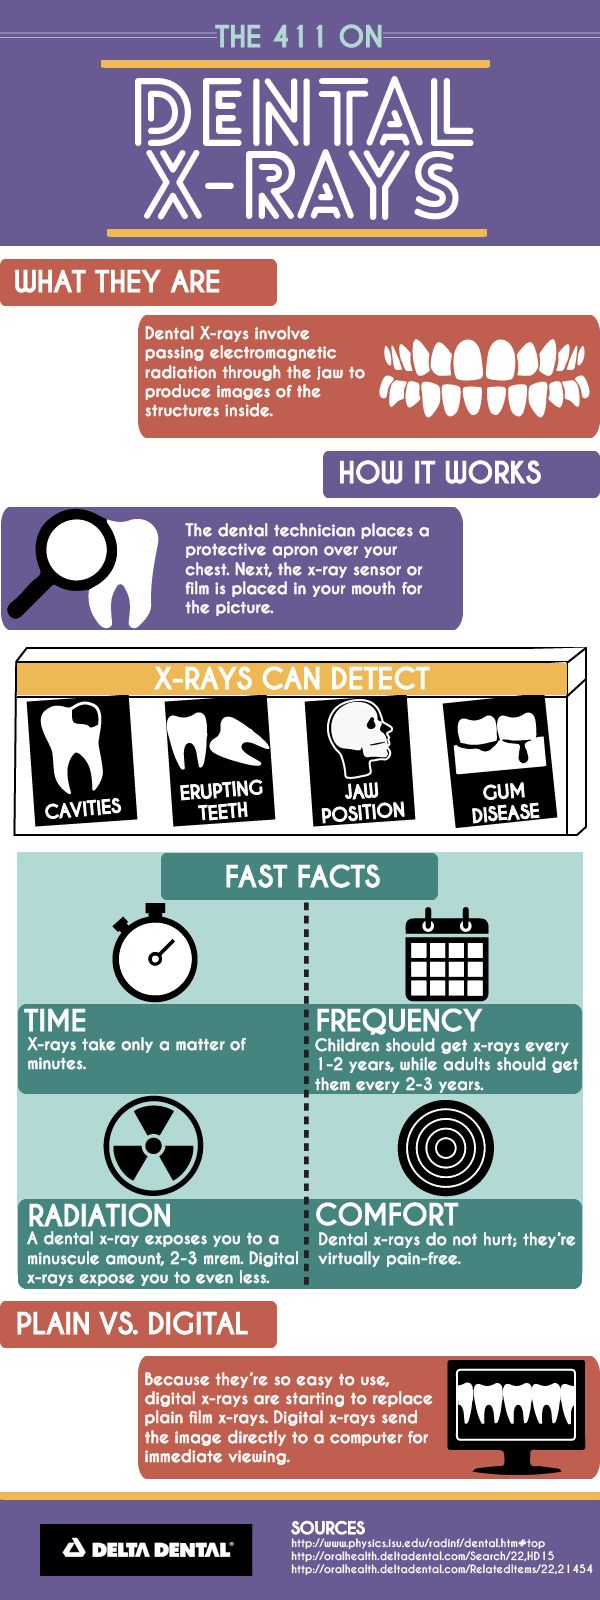 X ray poster design - A Common Myth About Dental X Rays Is That They Are Particularly Harmful Because They Are Using Radiation Extremely Close To The Head Brain